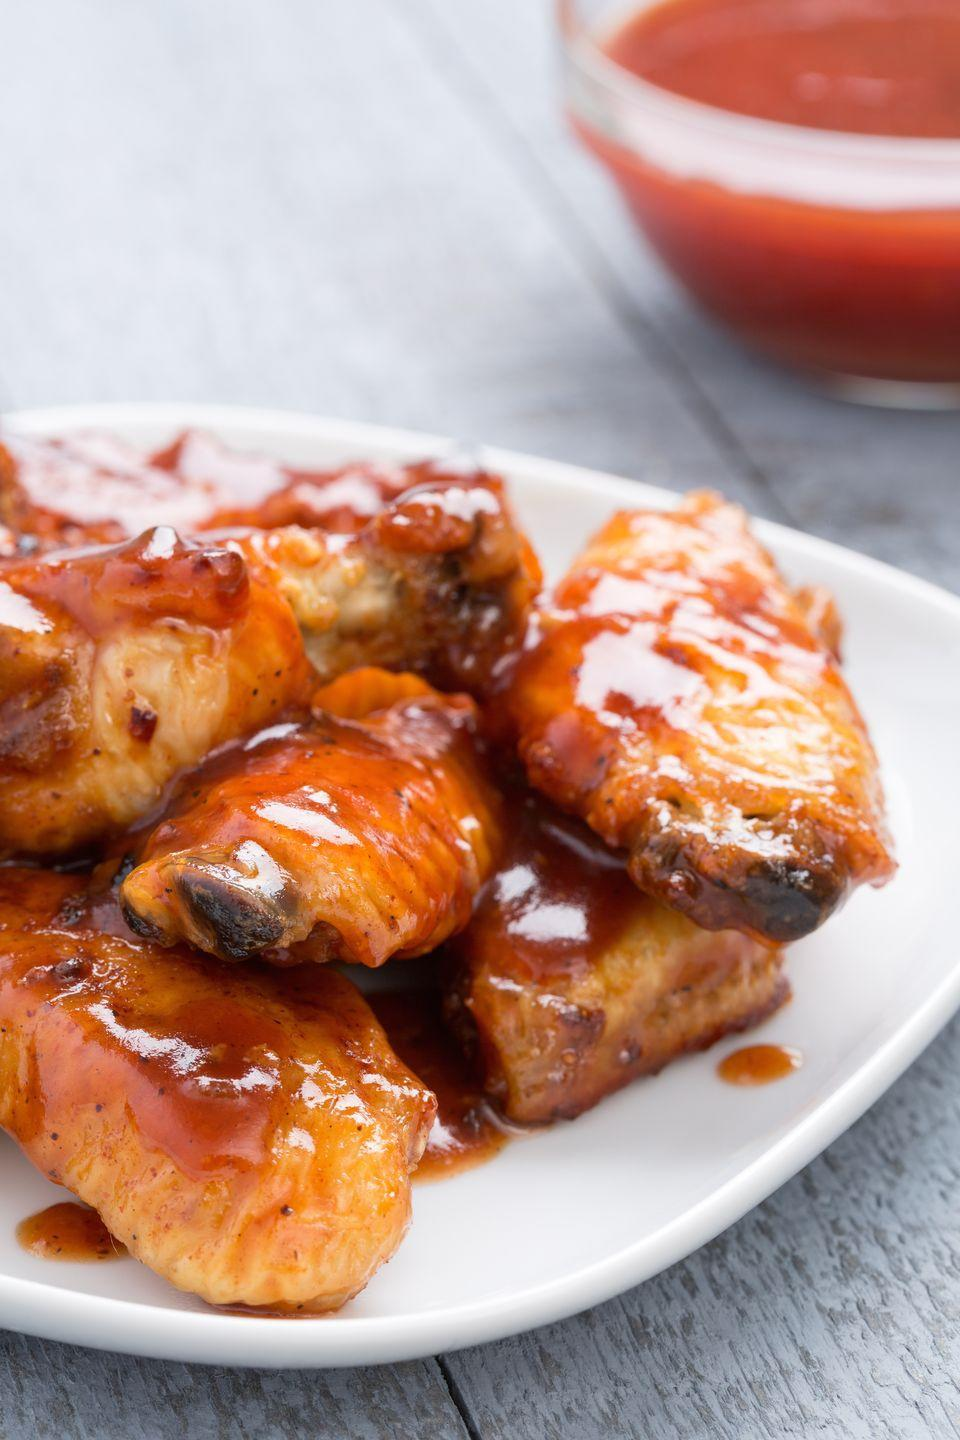 """<p>When you want to take a break from buffalo, reach for barbecue sauce—and bourbon for good measure.</p><p>Get the recipe from <a href=""""https://www.redbookmag.com/cooking/recipe-ideas/recipes/a44369/slow-cooker-barbecue-bourbon-chicken-wings-recipe/"""" rel=""""nofollow noopener"""" target=""""_blank"""" data-ylk=""""slk:Delish"""" class=""""link rapid-noclick-resp"""">Delish</a>.</p>"""